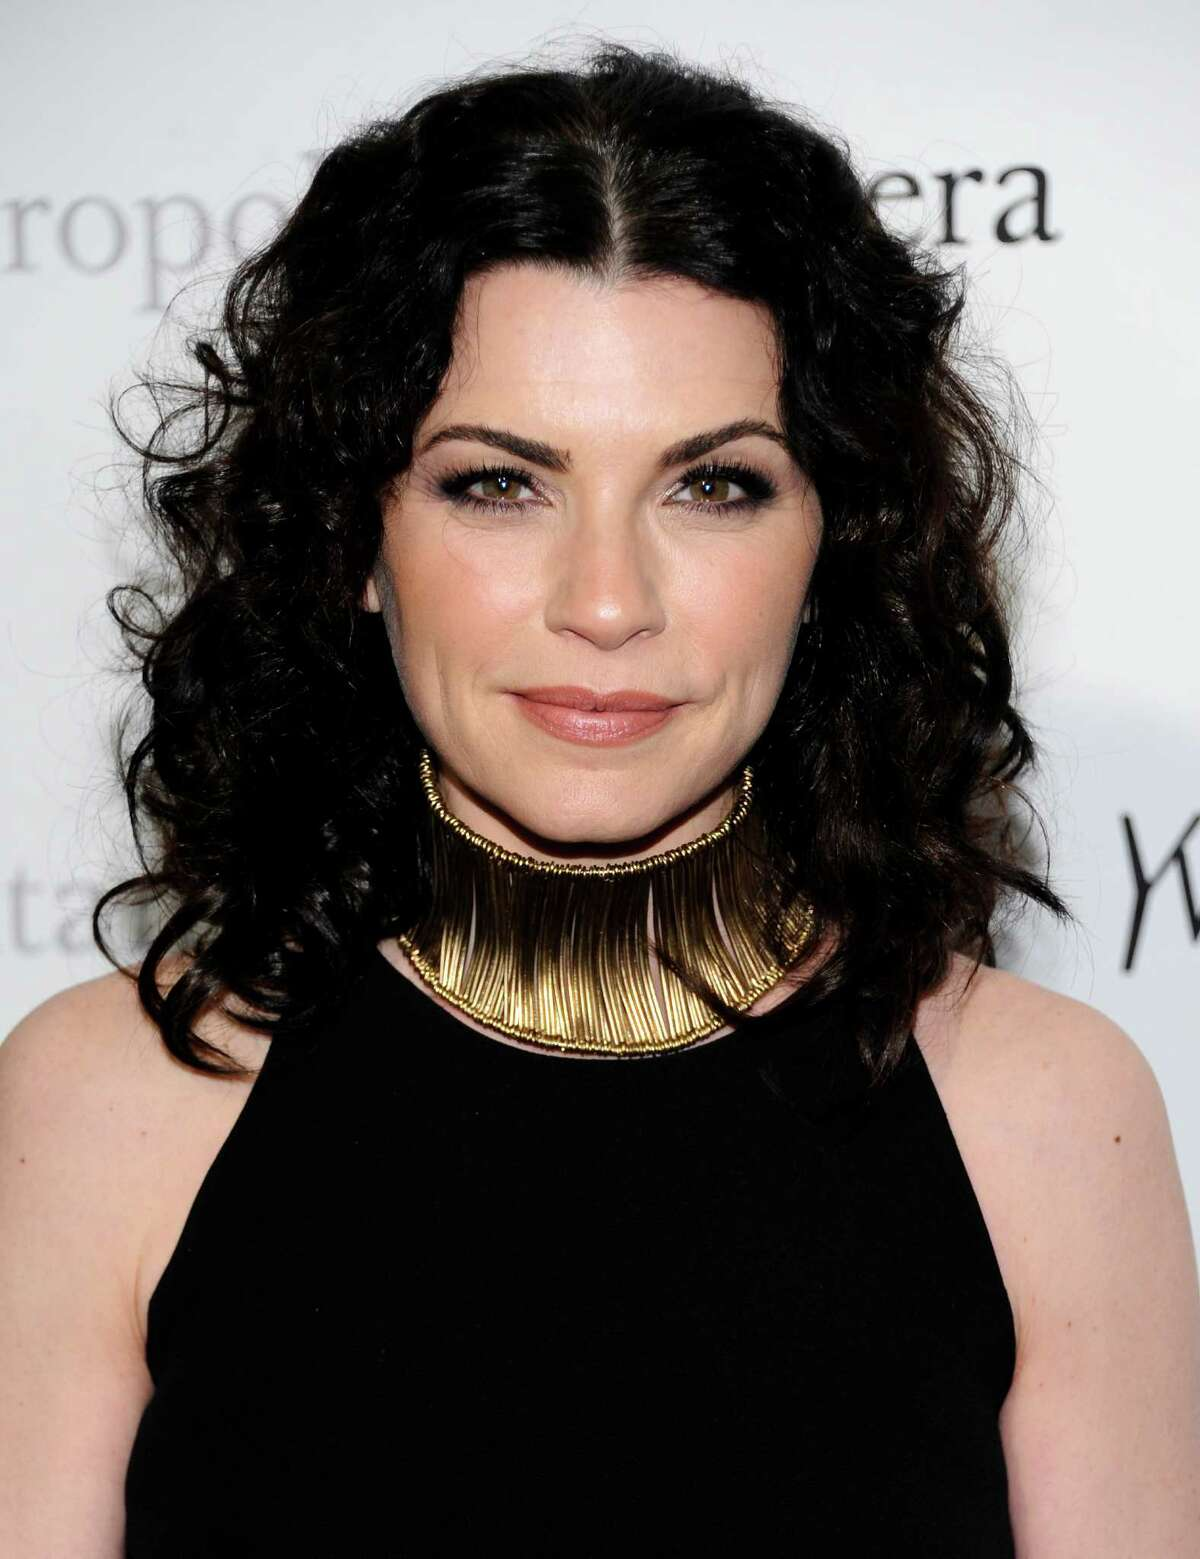 """FILE - In this March 24, 2011 file photo, actress Julianna Margulies attends the Metropolitan Opera's premiere of """"Le Comte Ory"""" sponsored by Yves Saint Laurent in New York. Julianna Margulies was nominated Thursday, Dec. 15, 2011 for a Golden Globe award for best actress in a television drama series for her role in """"The Good Wife."""" (AP Photo/Evan Agostin, filei)"""